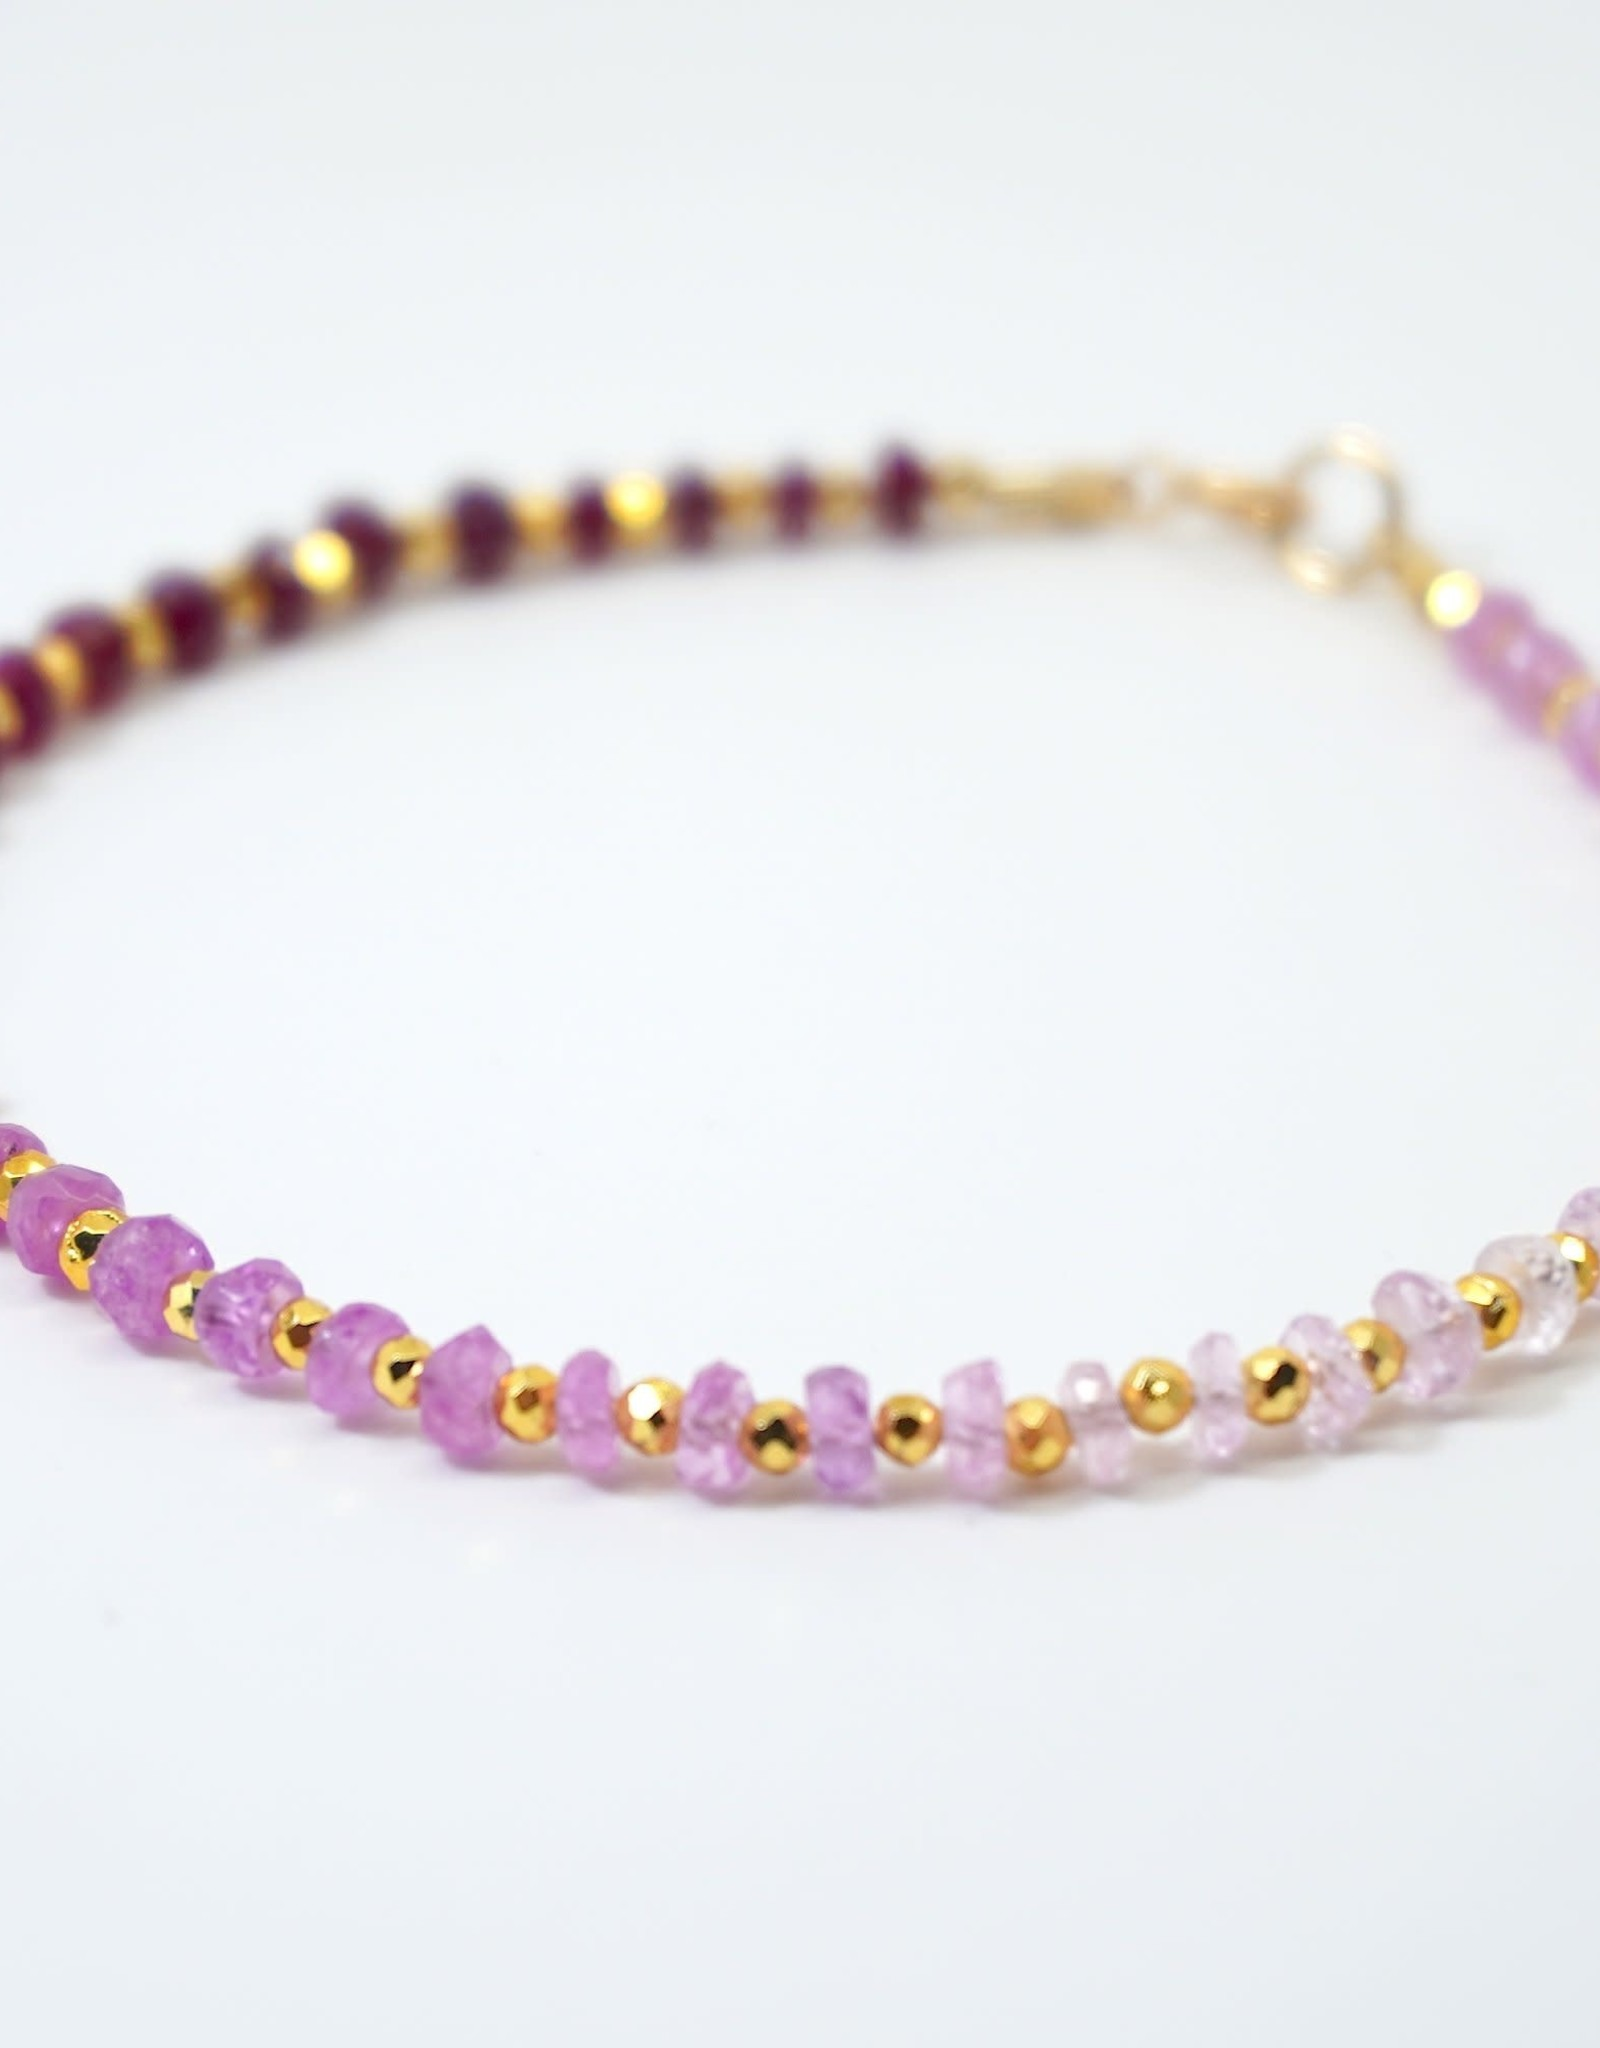 Mined and Found Kenzie One by One Ombre Ruby Bracelet-Gold Fill